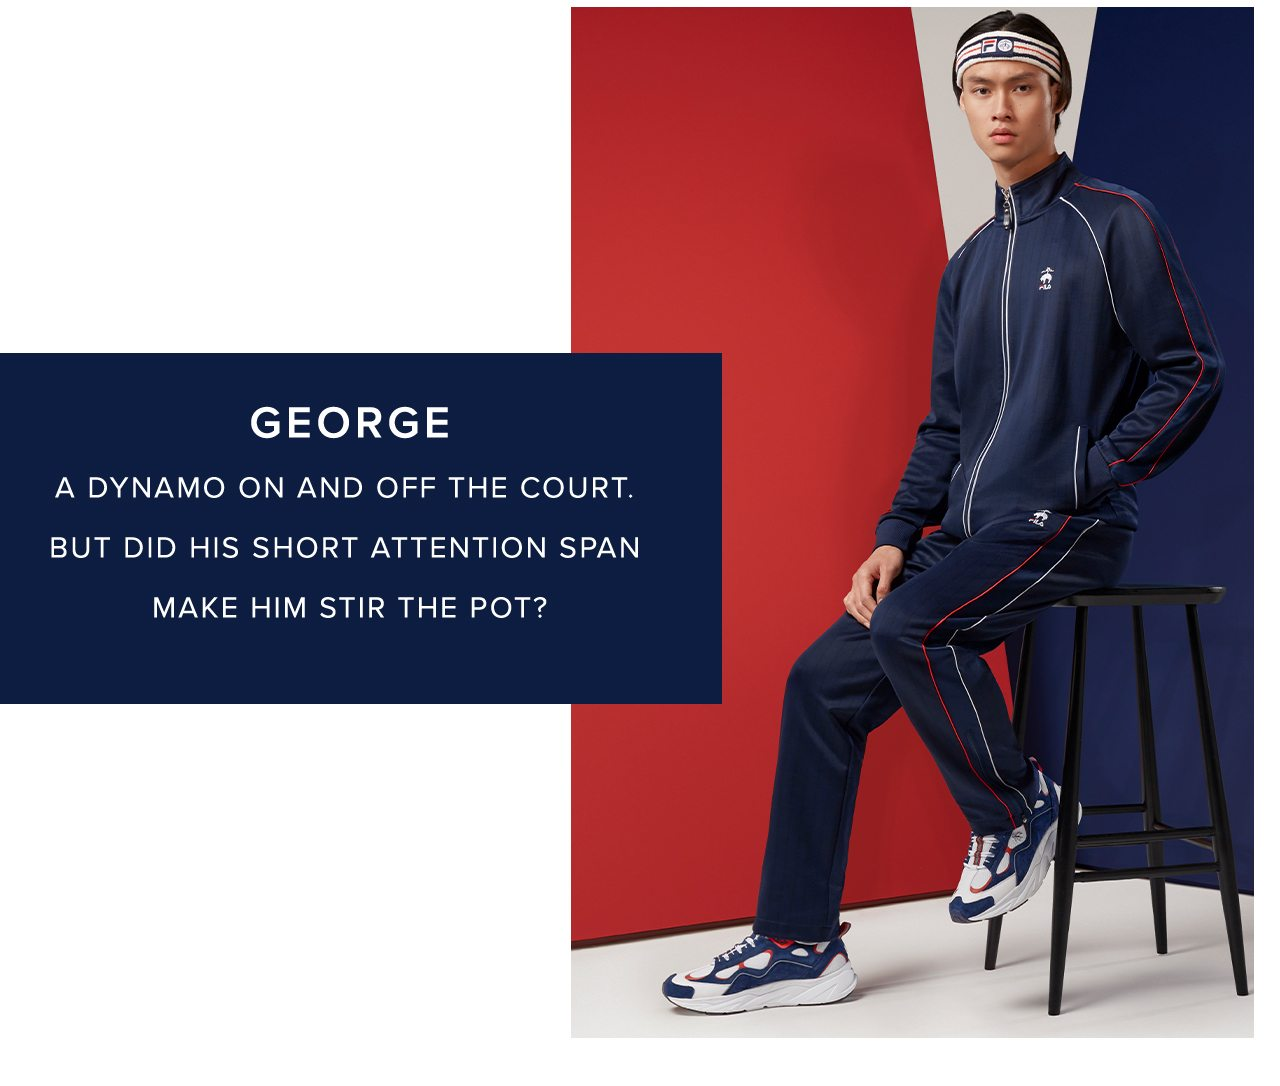 George A dynamo on and off the court. But did his short attention span make him stir the pot?